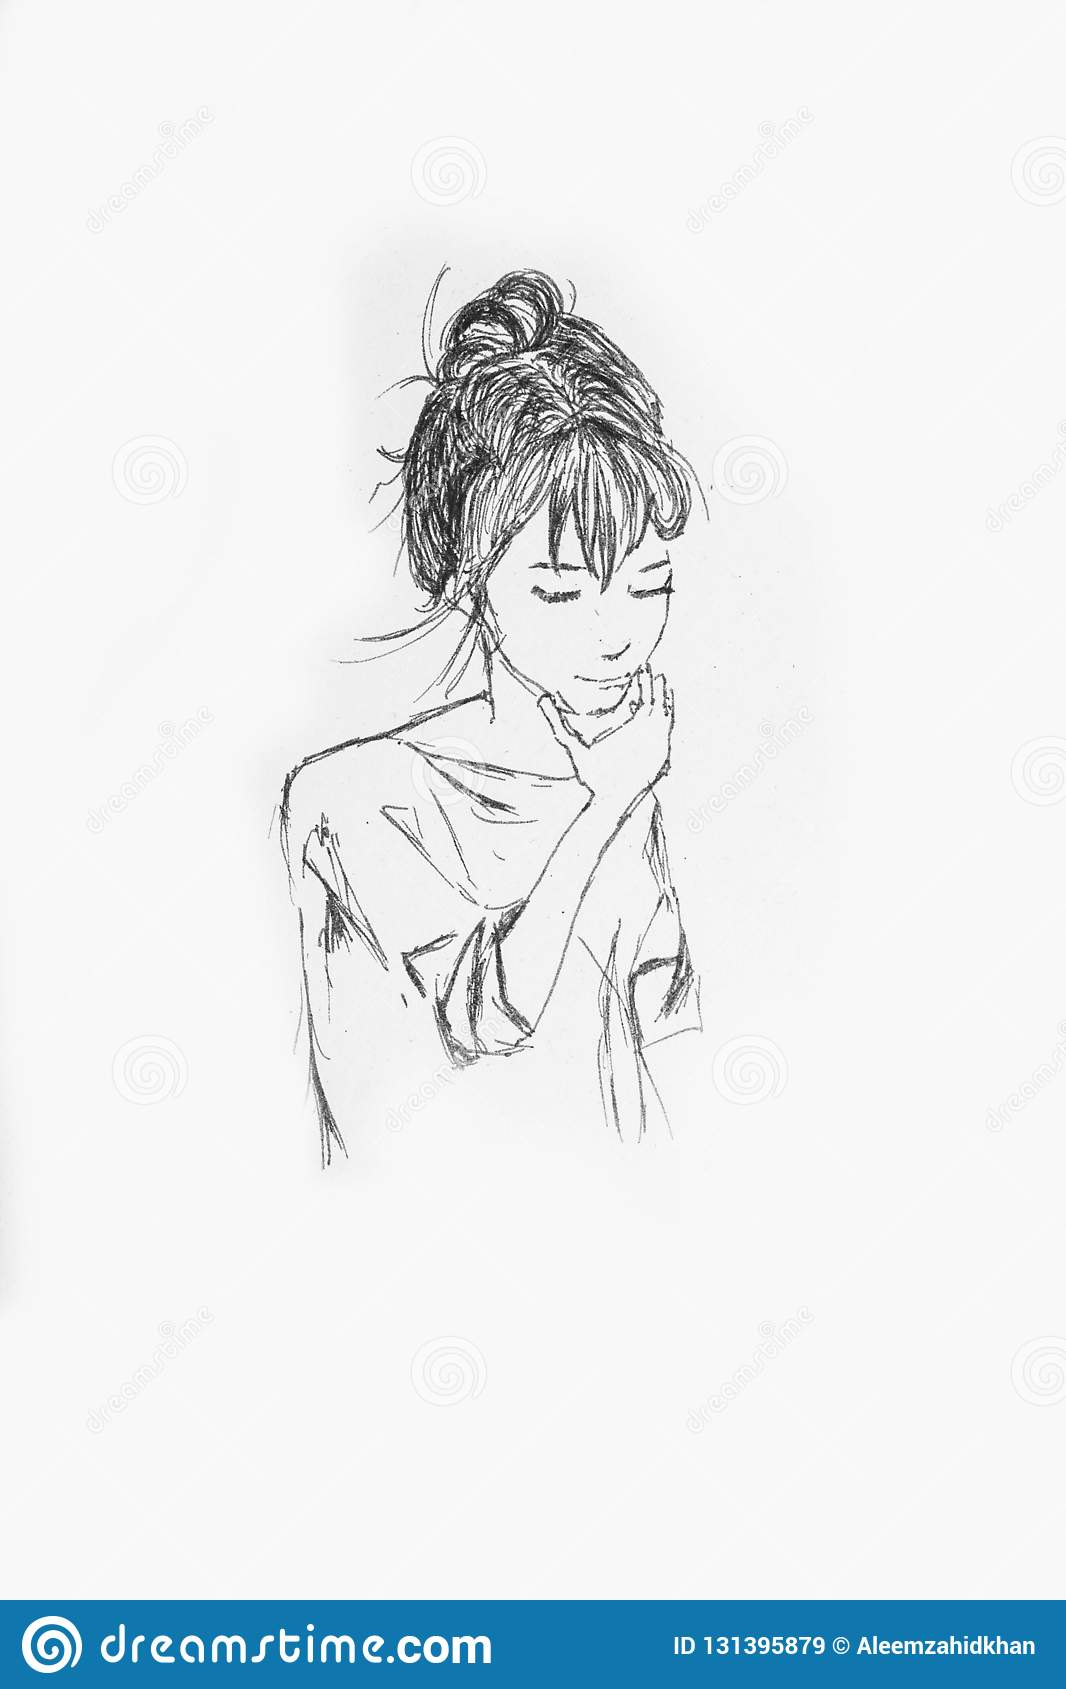 Beautiful girl portrait pencil sketch of an anime girl on